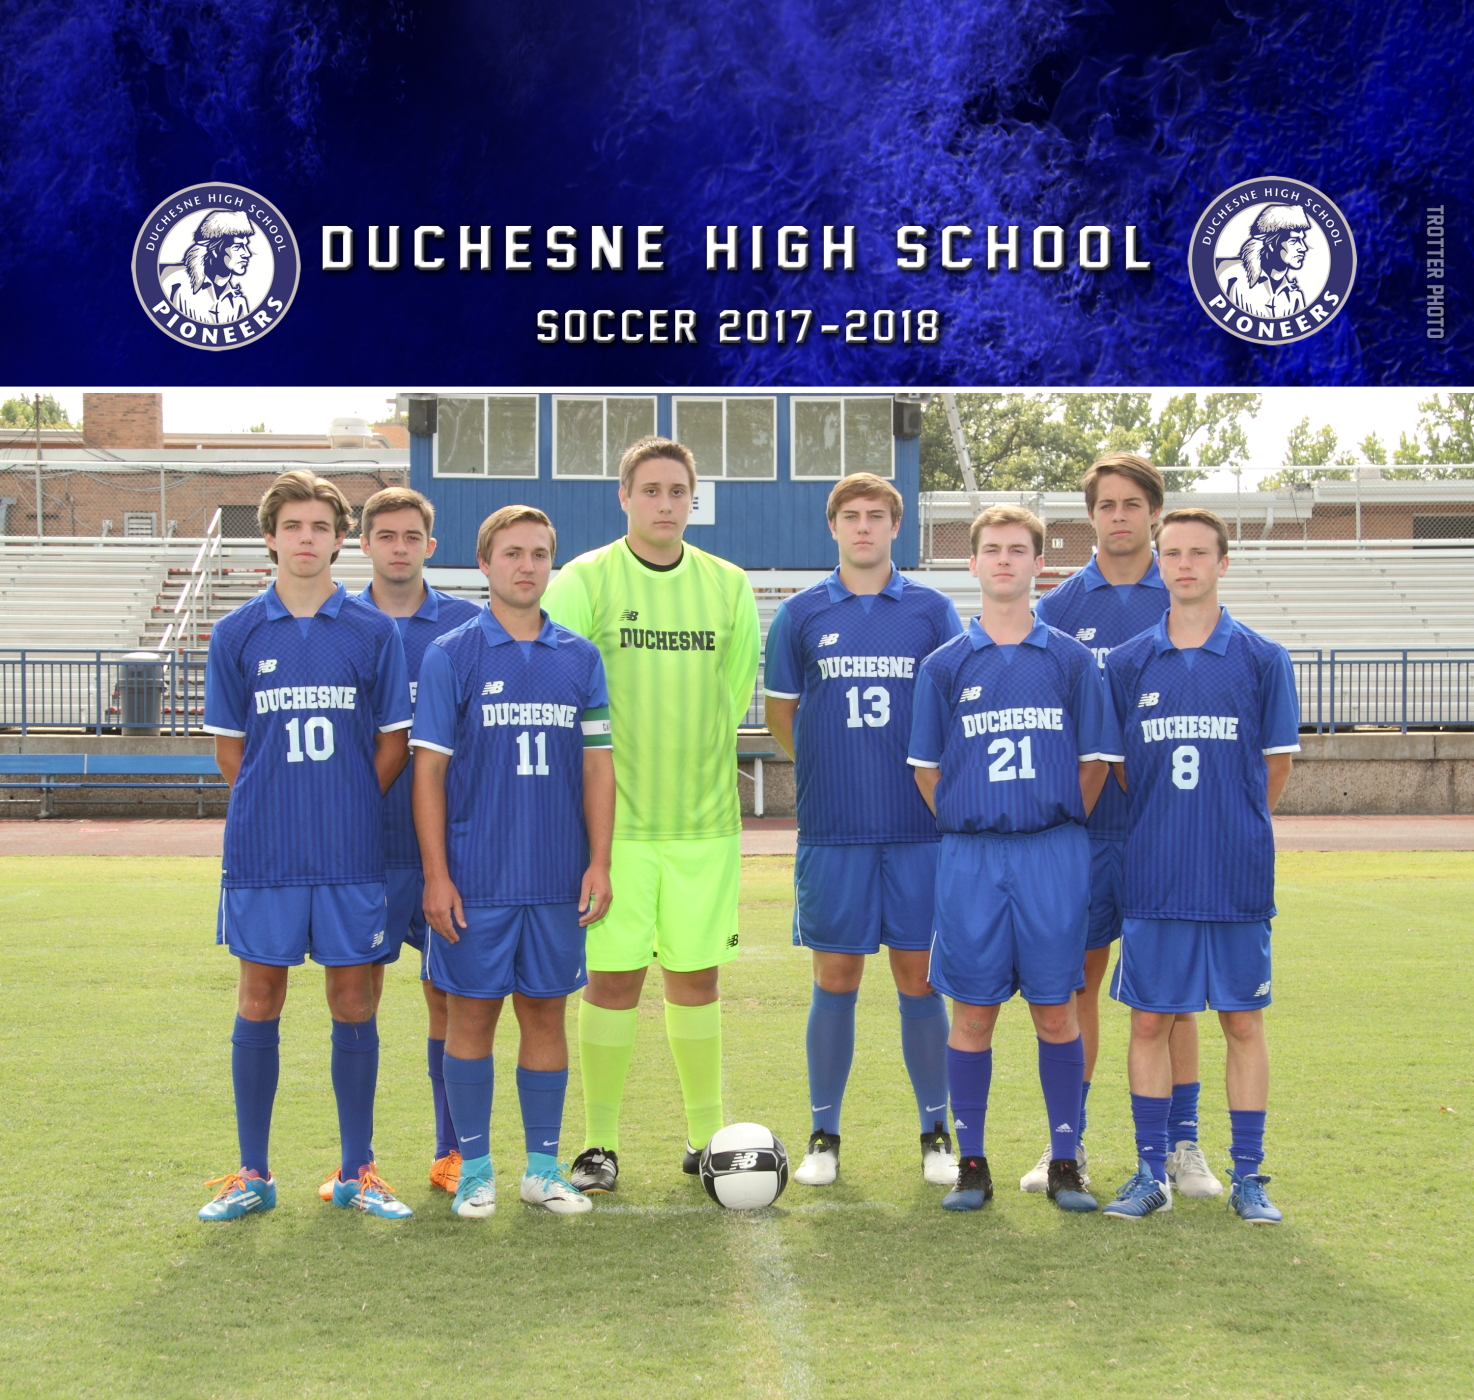 Duchesne High School House Raffle Duchesne High School Boys Soccer